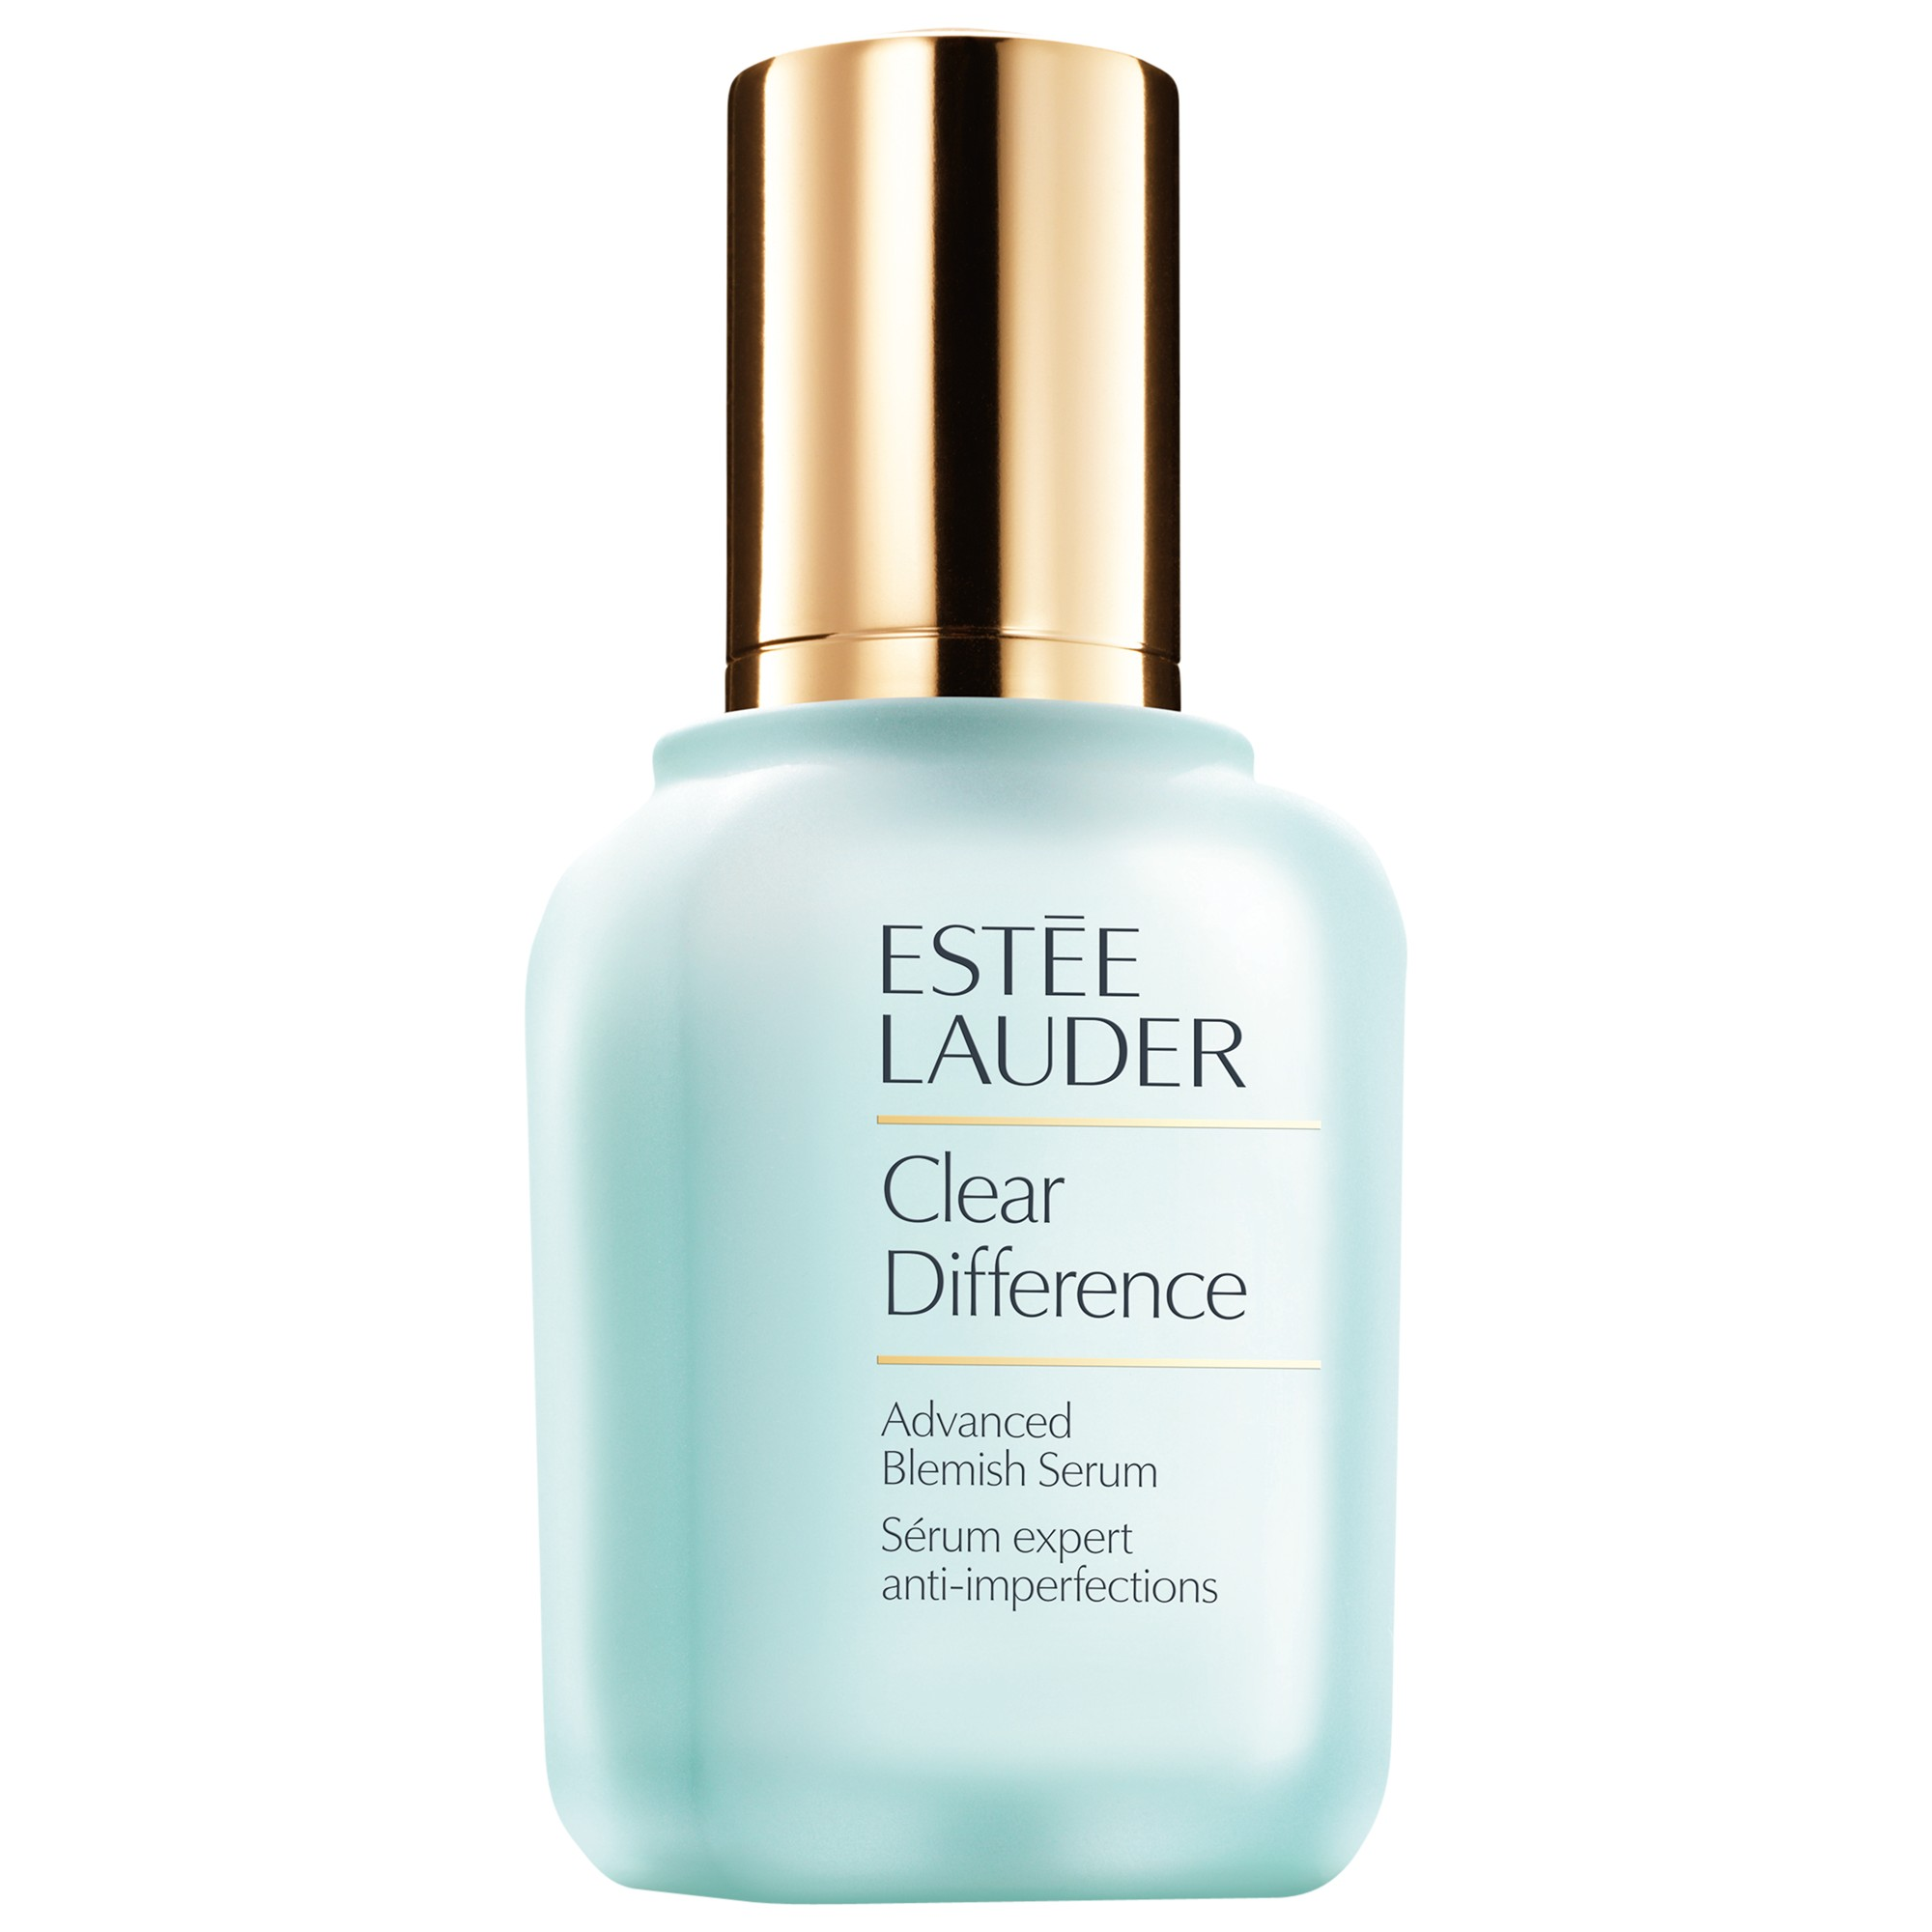 ESTEE LAUDER CLEAR DIFFERENCE ADVANCED BLEMISH SERUM 100 ML FORMATO DUTY FREE